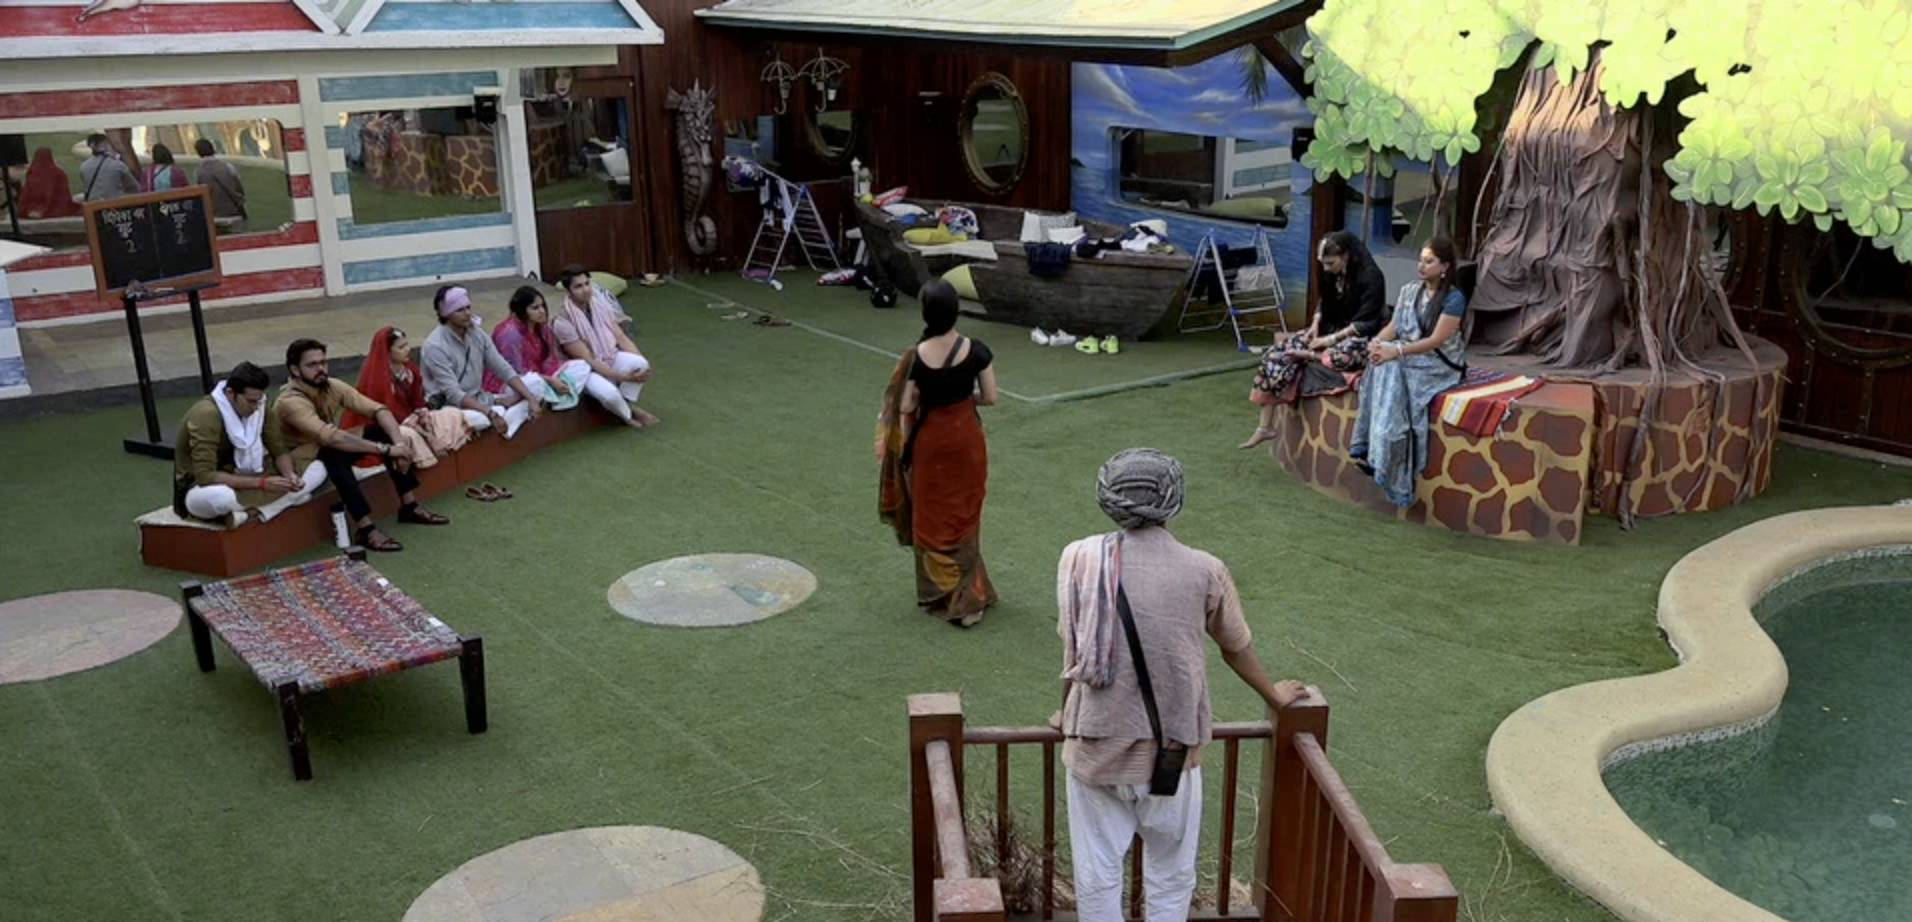 Exclusive pictures from the BB Panchayat tonight?